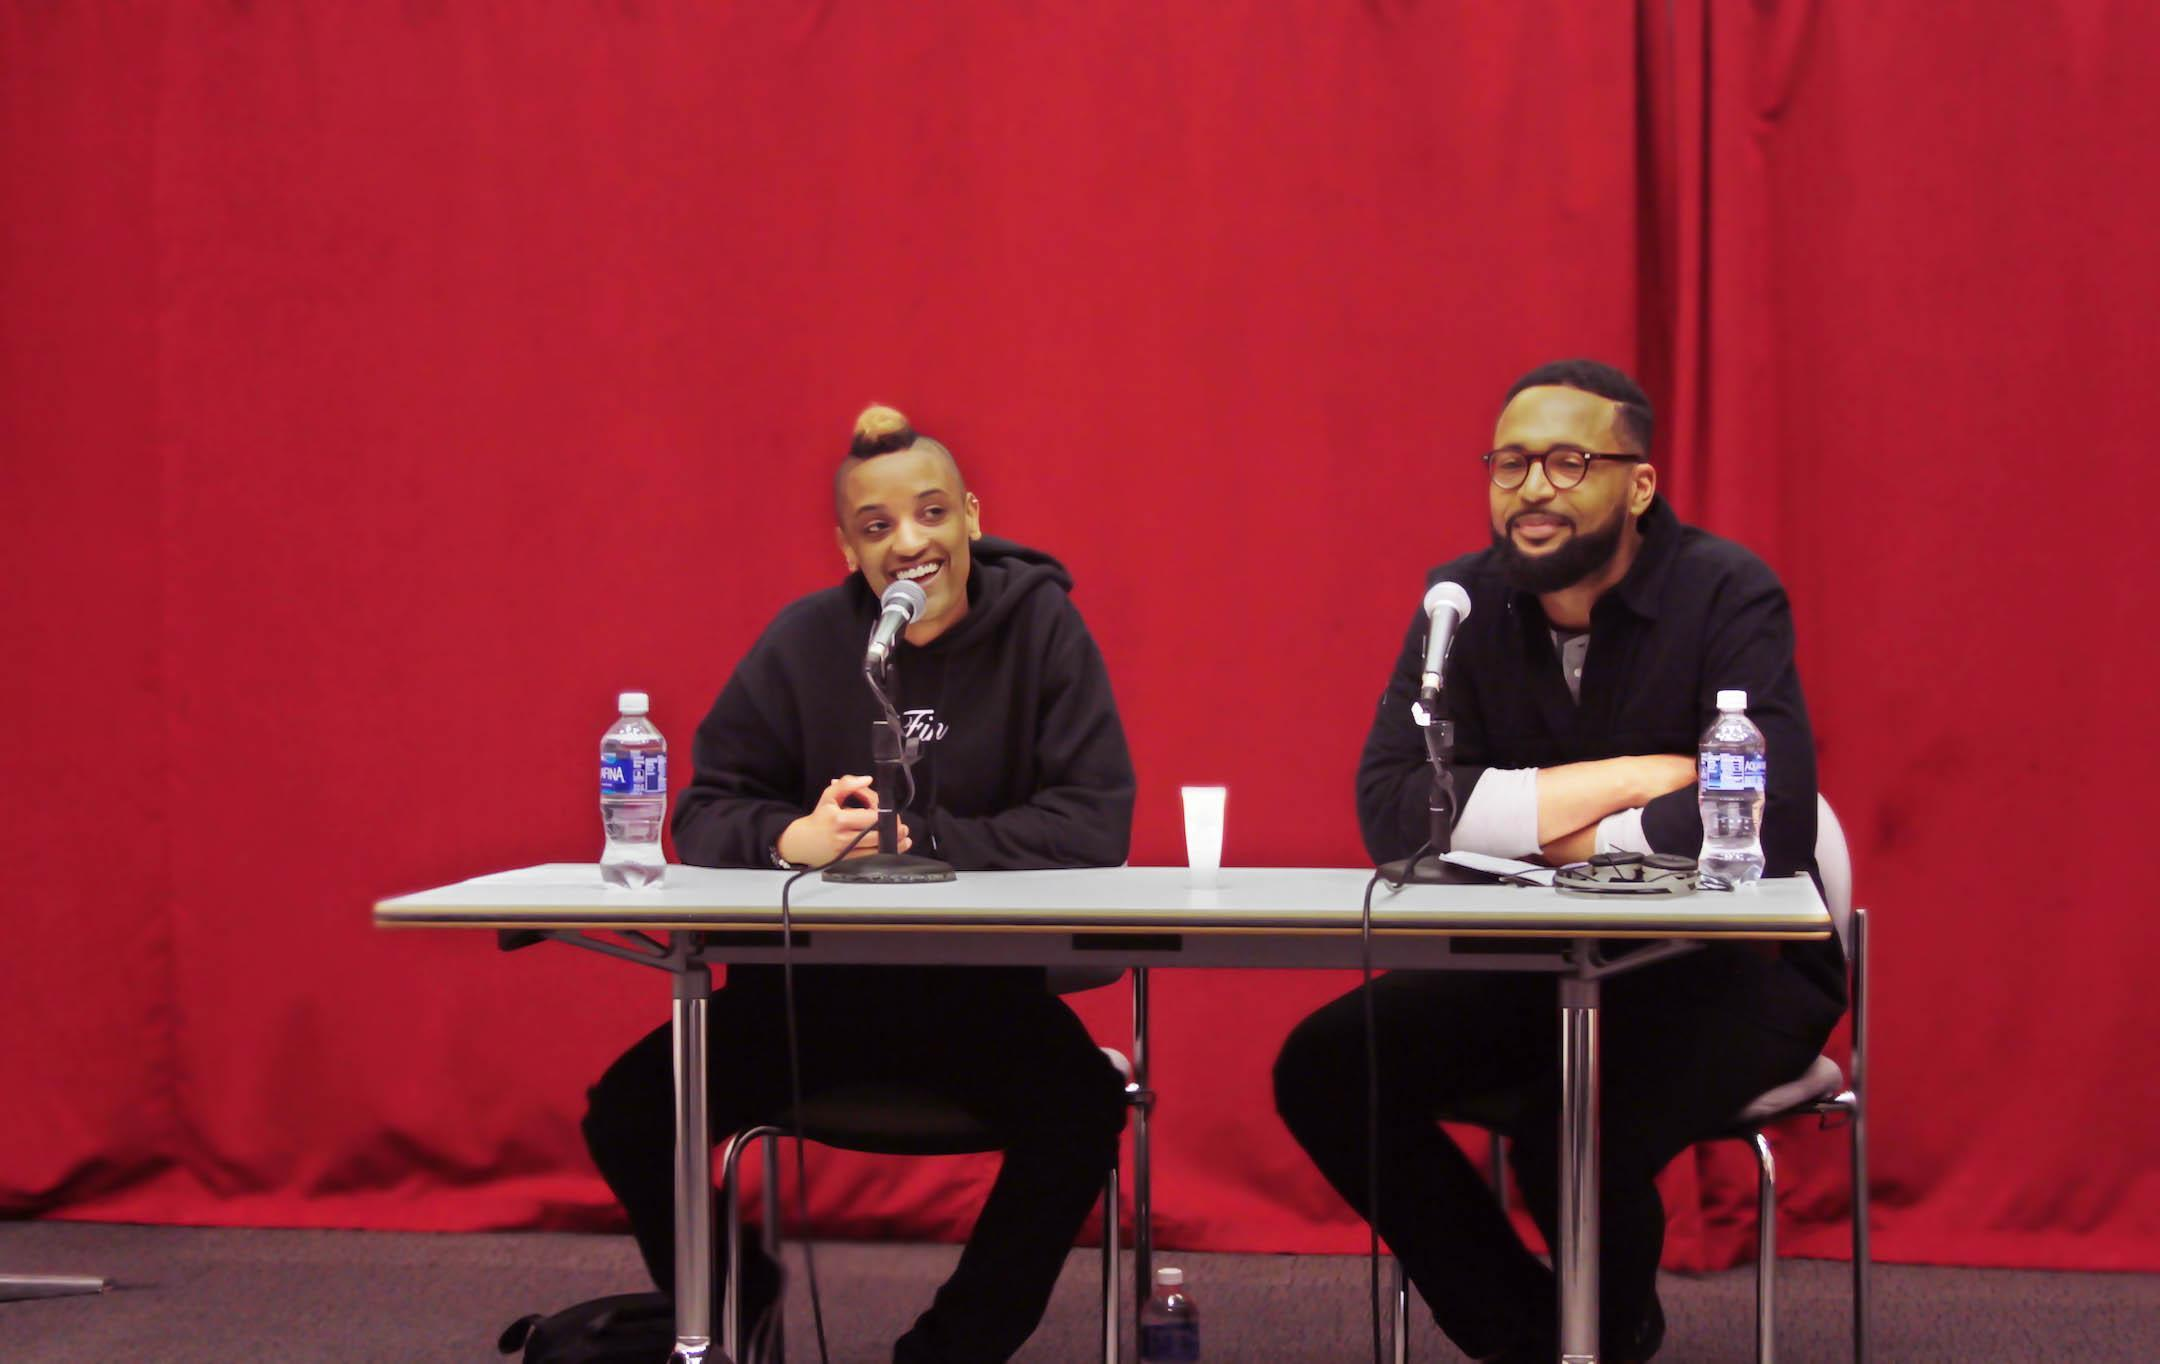 Syd The Kid (left) and Gallatin professor Kwami Coleman (right) discuss Syd's backstory, from what made her want to begin her musical career to how she got to where she is today with The Internet. The Q&A session occurred on Feb. 24.